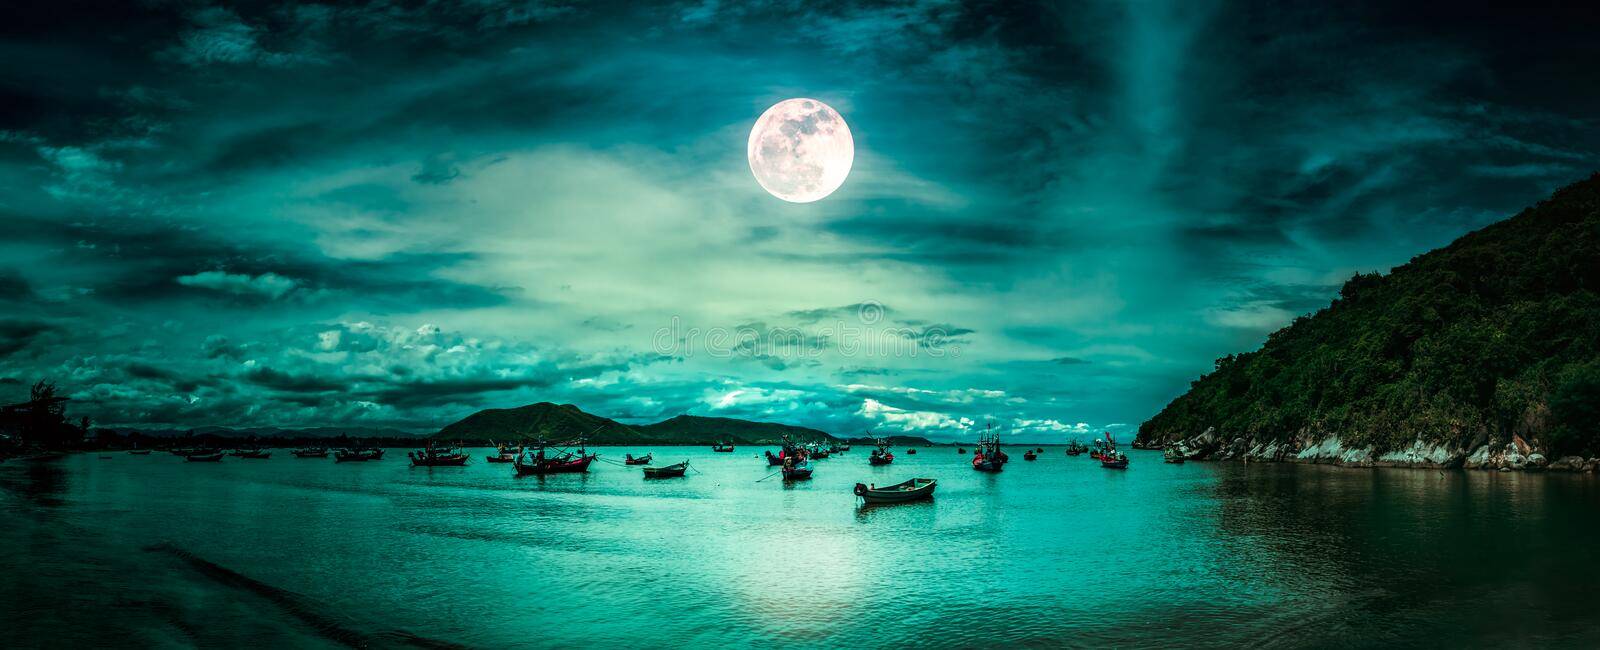 Beautiful mysterious nature landscape. Beach by the sea with mountains and full moon at nighttime stock photos